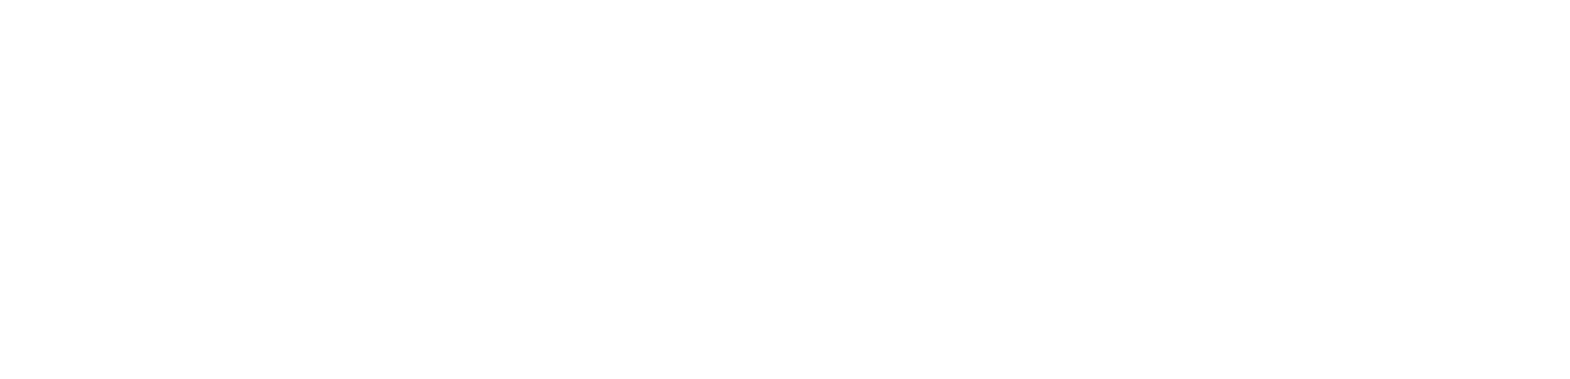 Manchester Furniture Show 2019